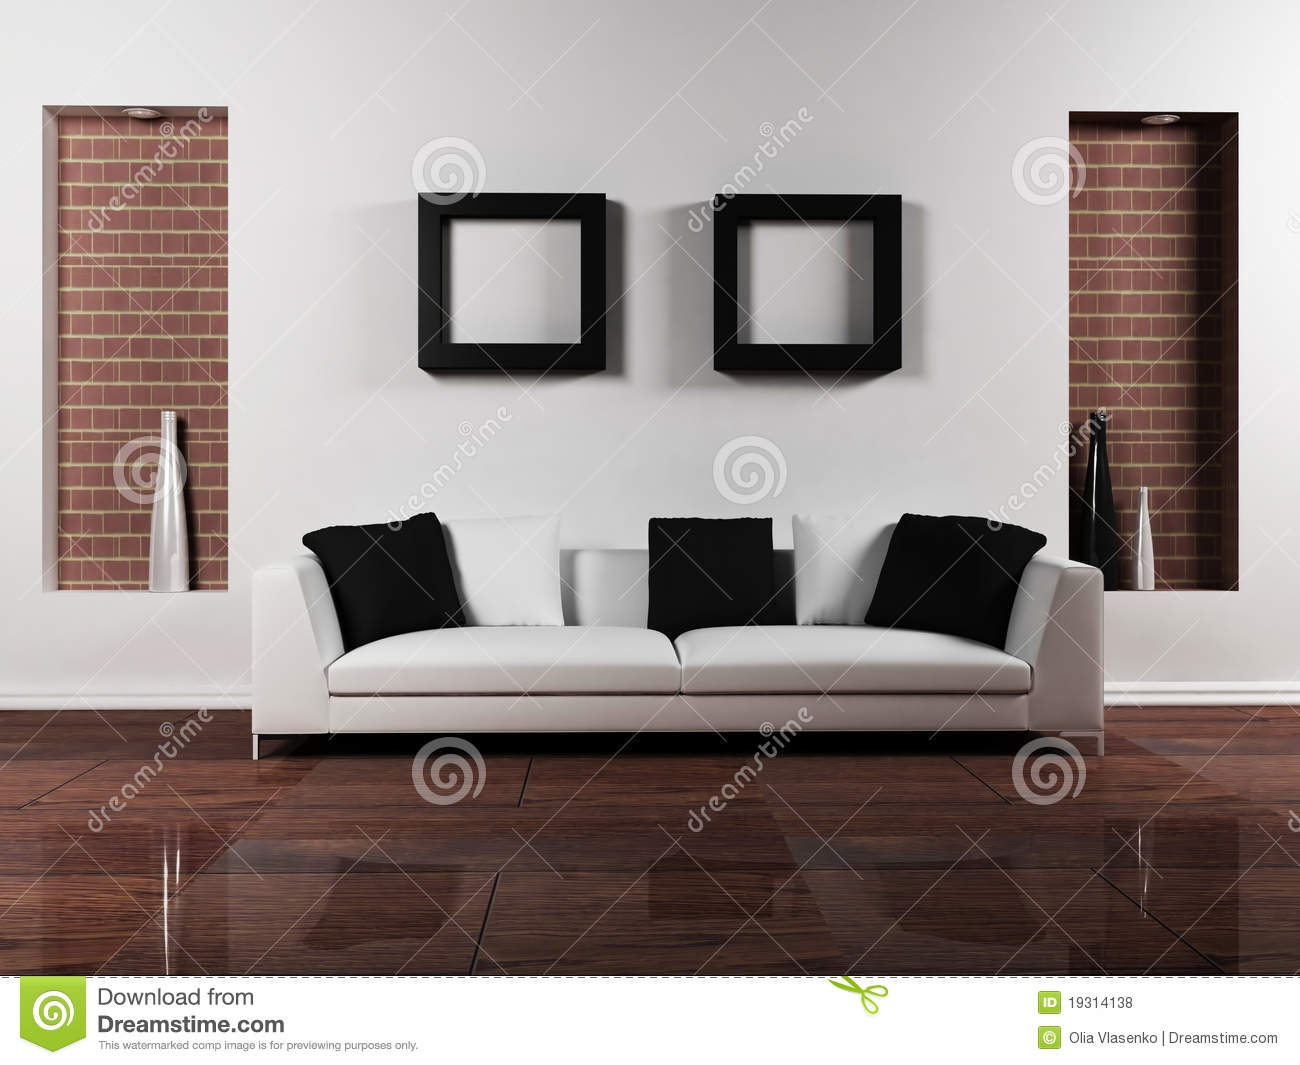 Modern interior design of living room stock illustration image 19314138 - Modern interior design for living room ...